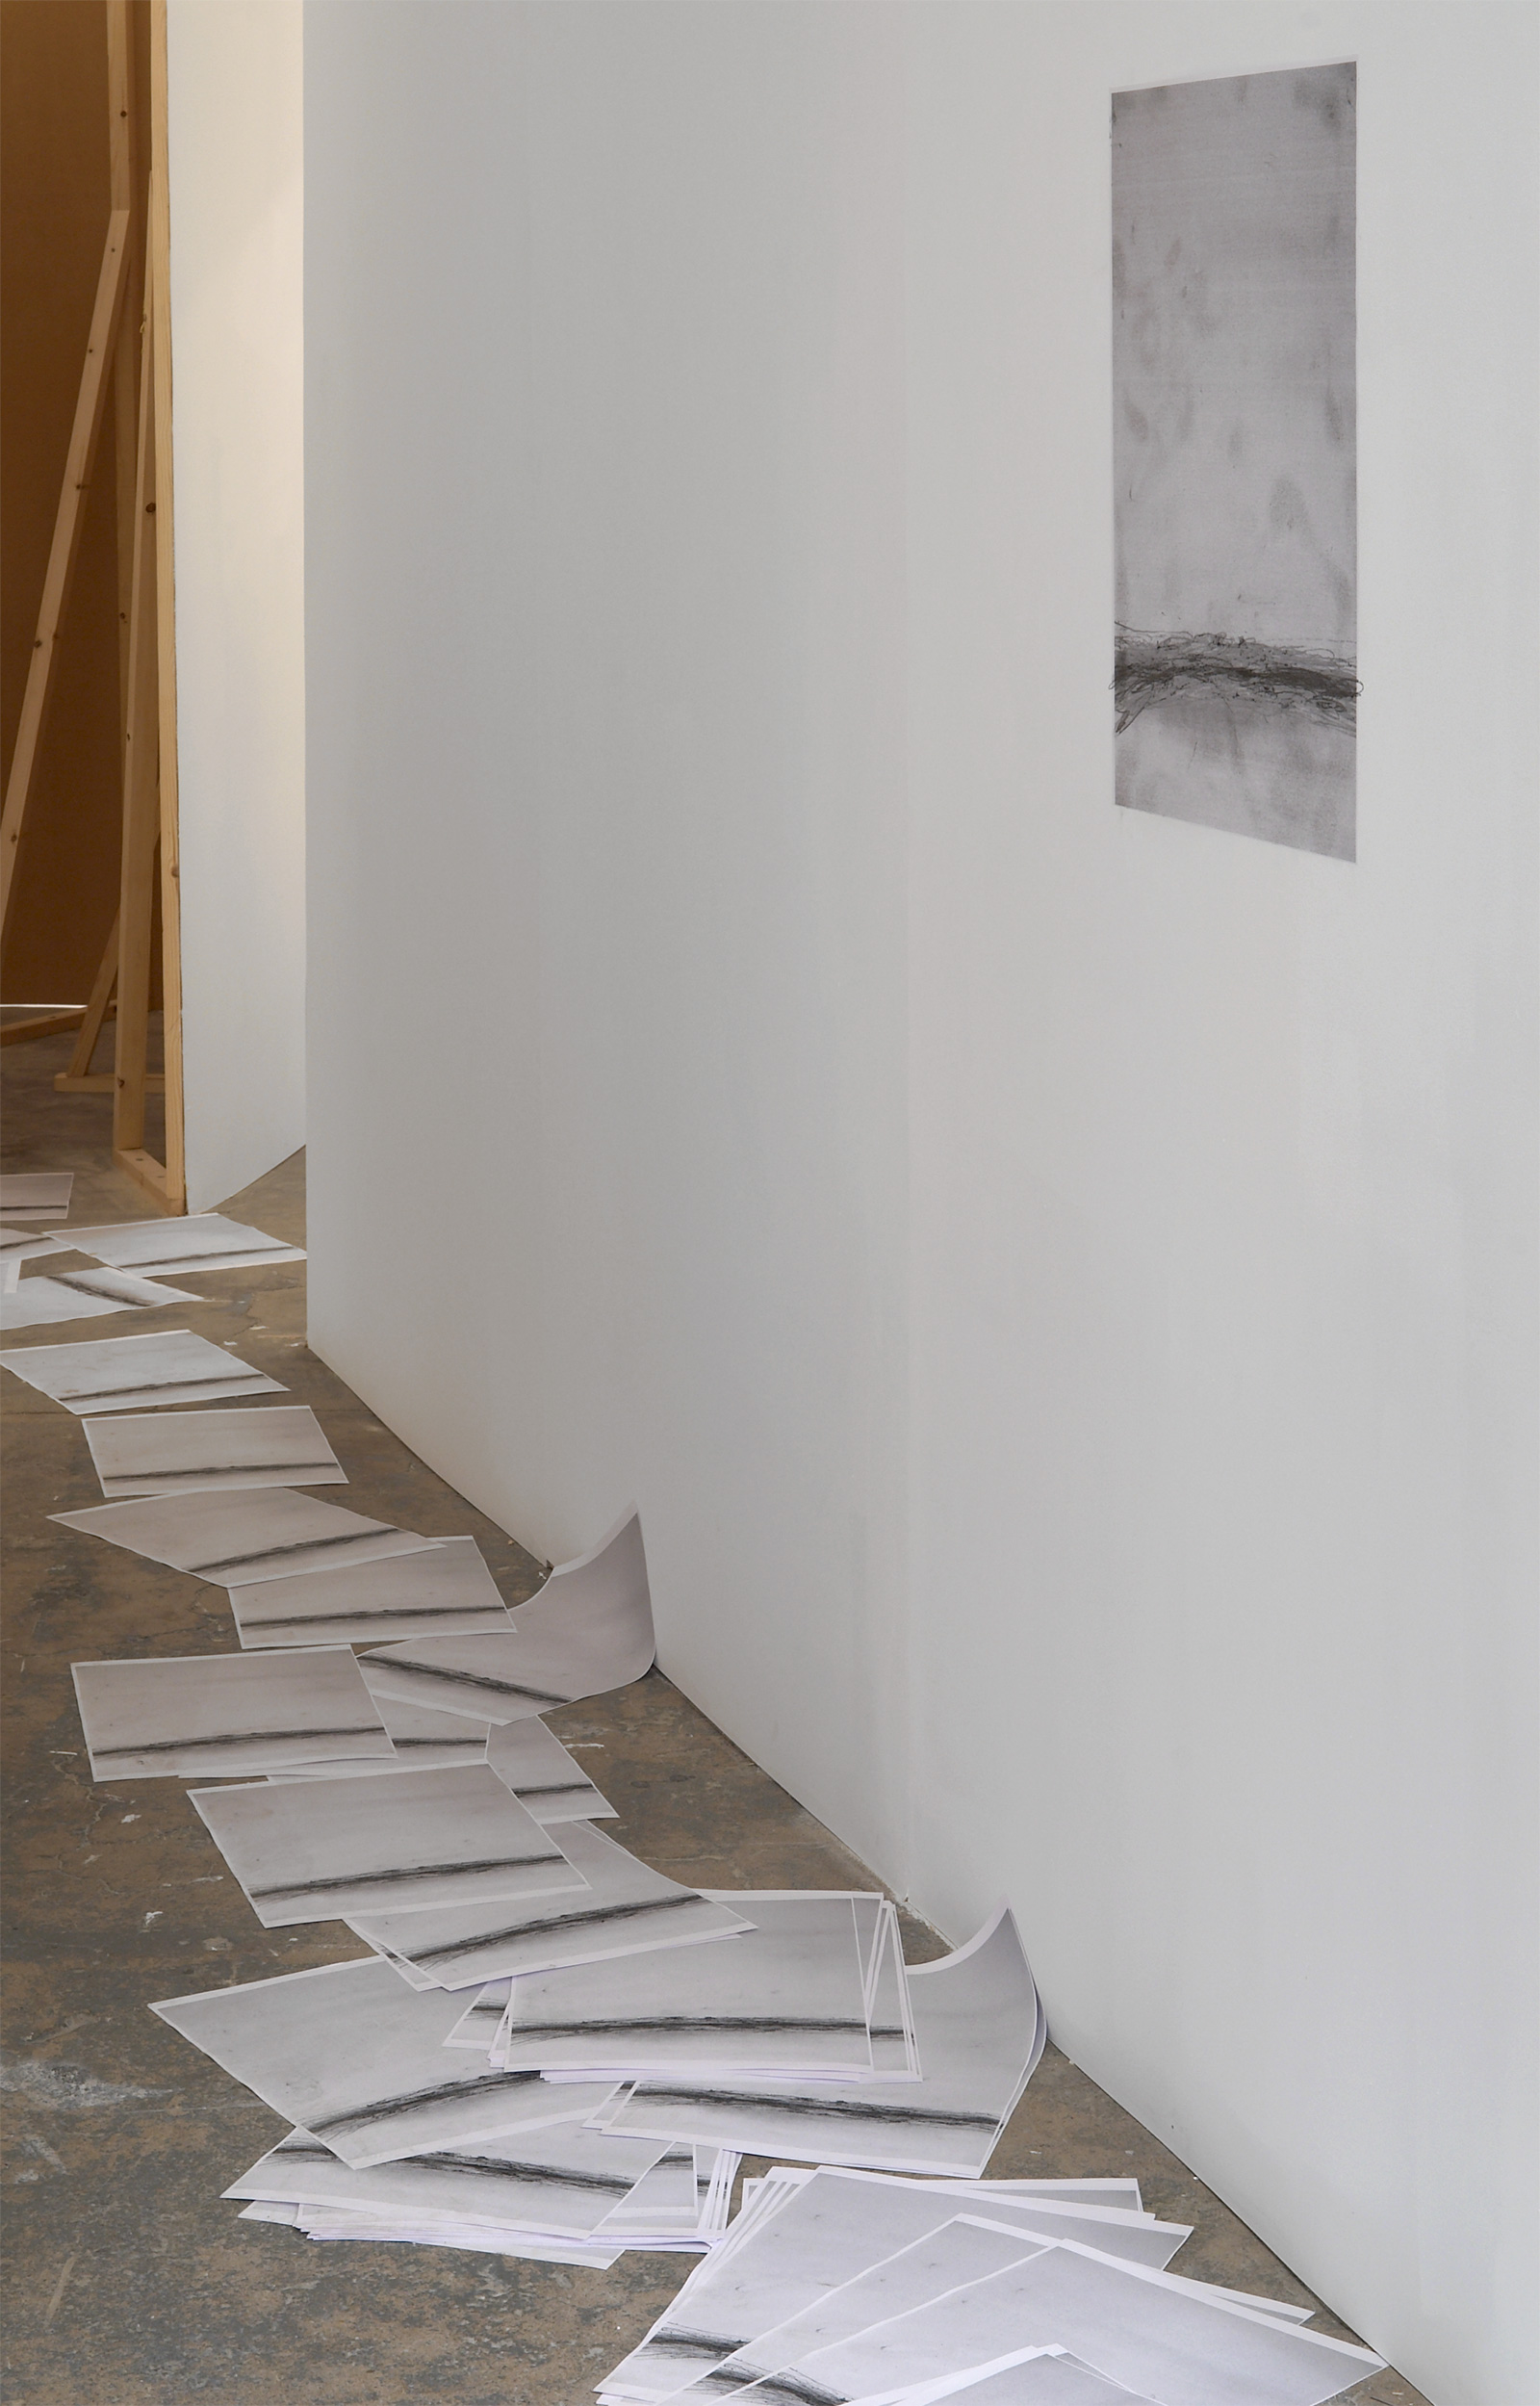 Installation view. Joseph Strau and R.H. Quaytman